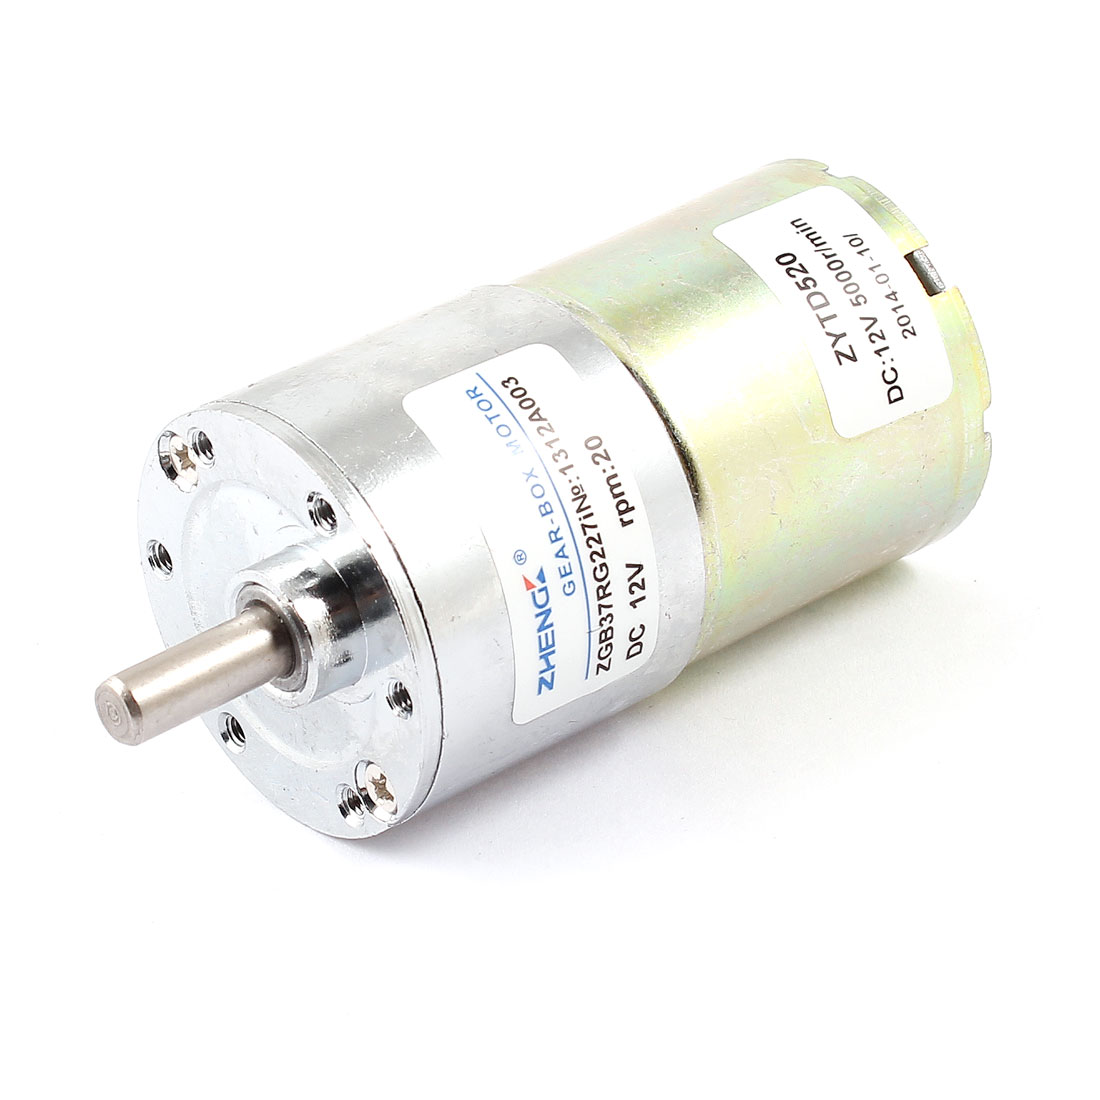 Shaft Diameter 6mm x 15mm DC 12V 20 RPM Speed 6mm Dia Shaft Magnetic Gearbox Electric Geared Motor 37mm x 86mm jtc набор головок торцевых и вставок jtc s110b b72